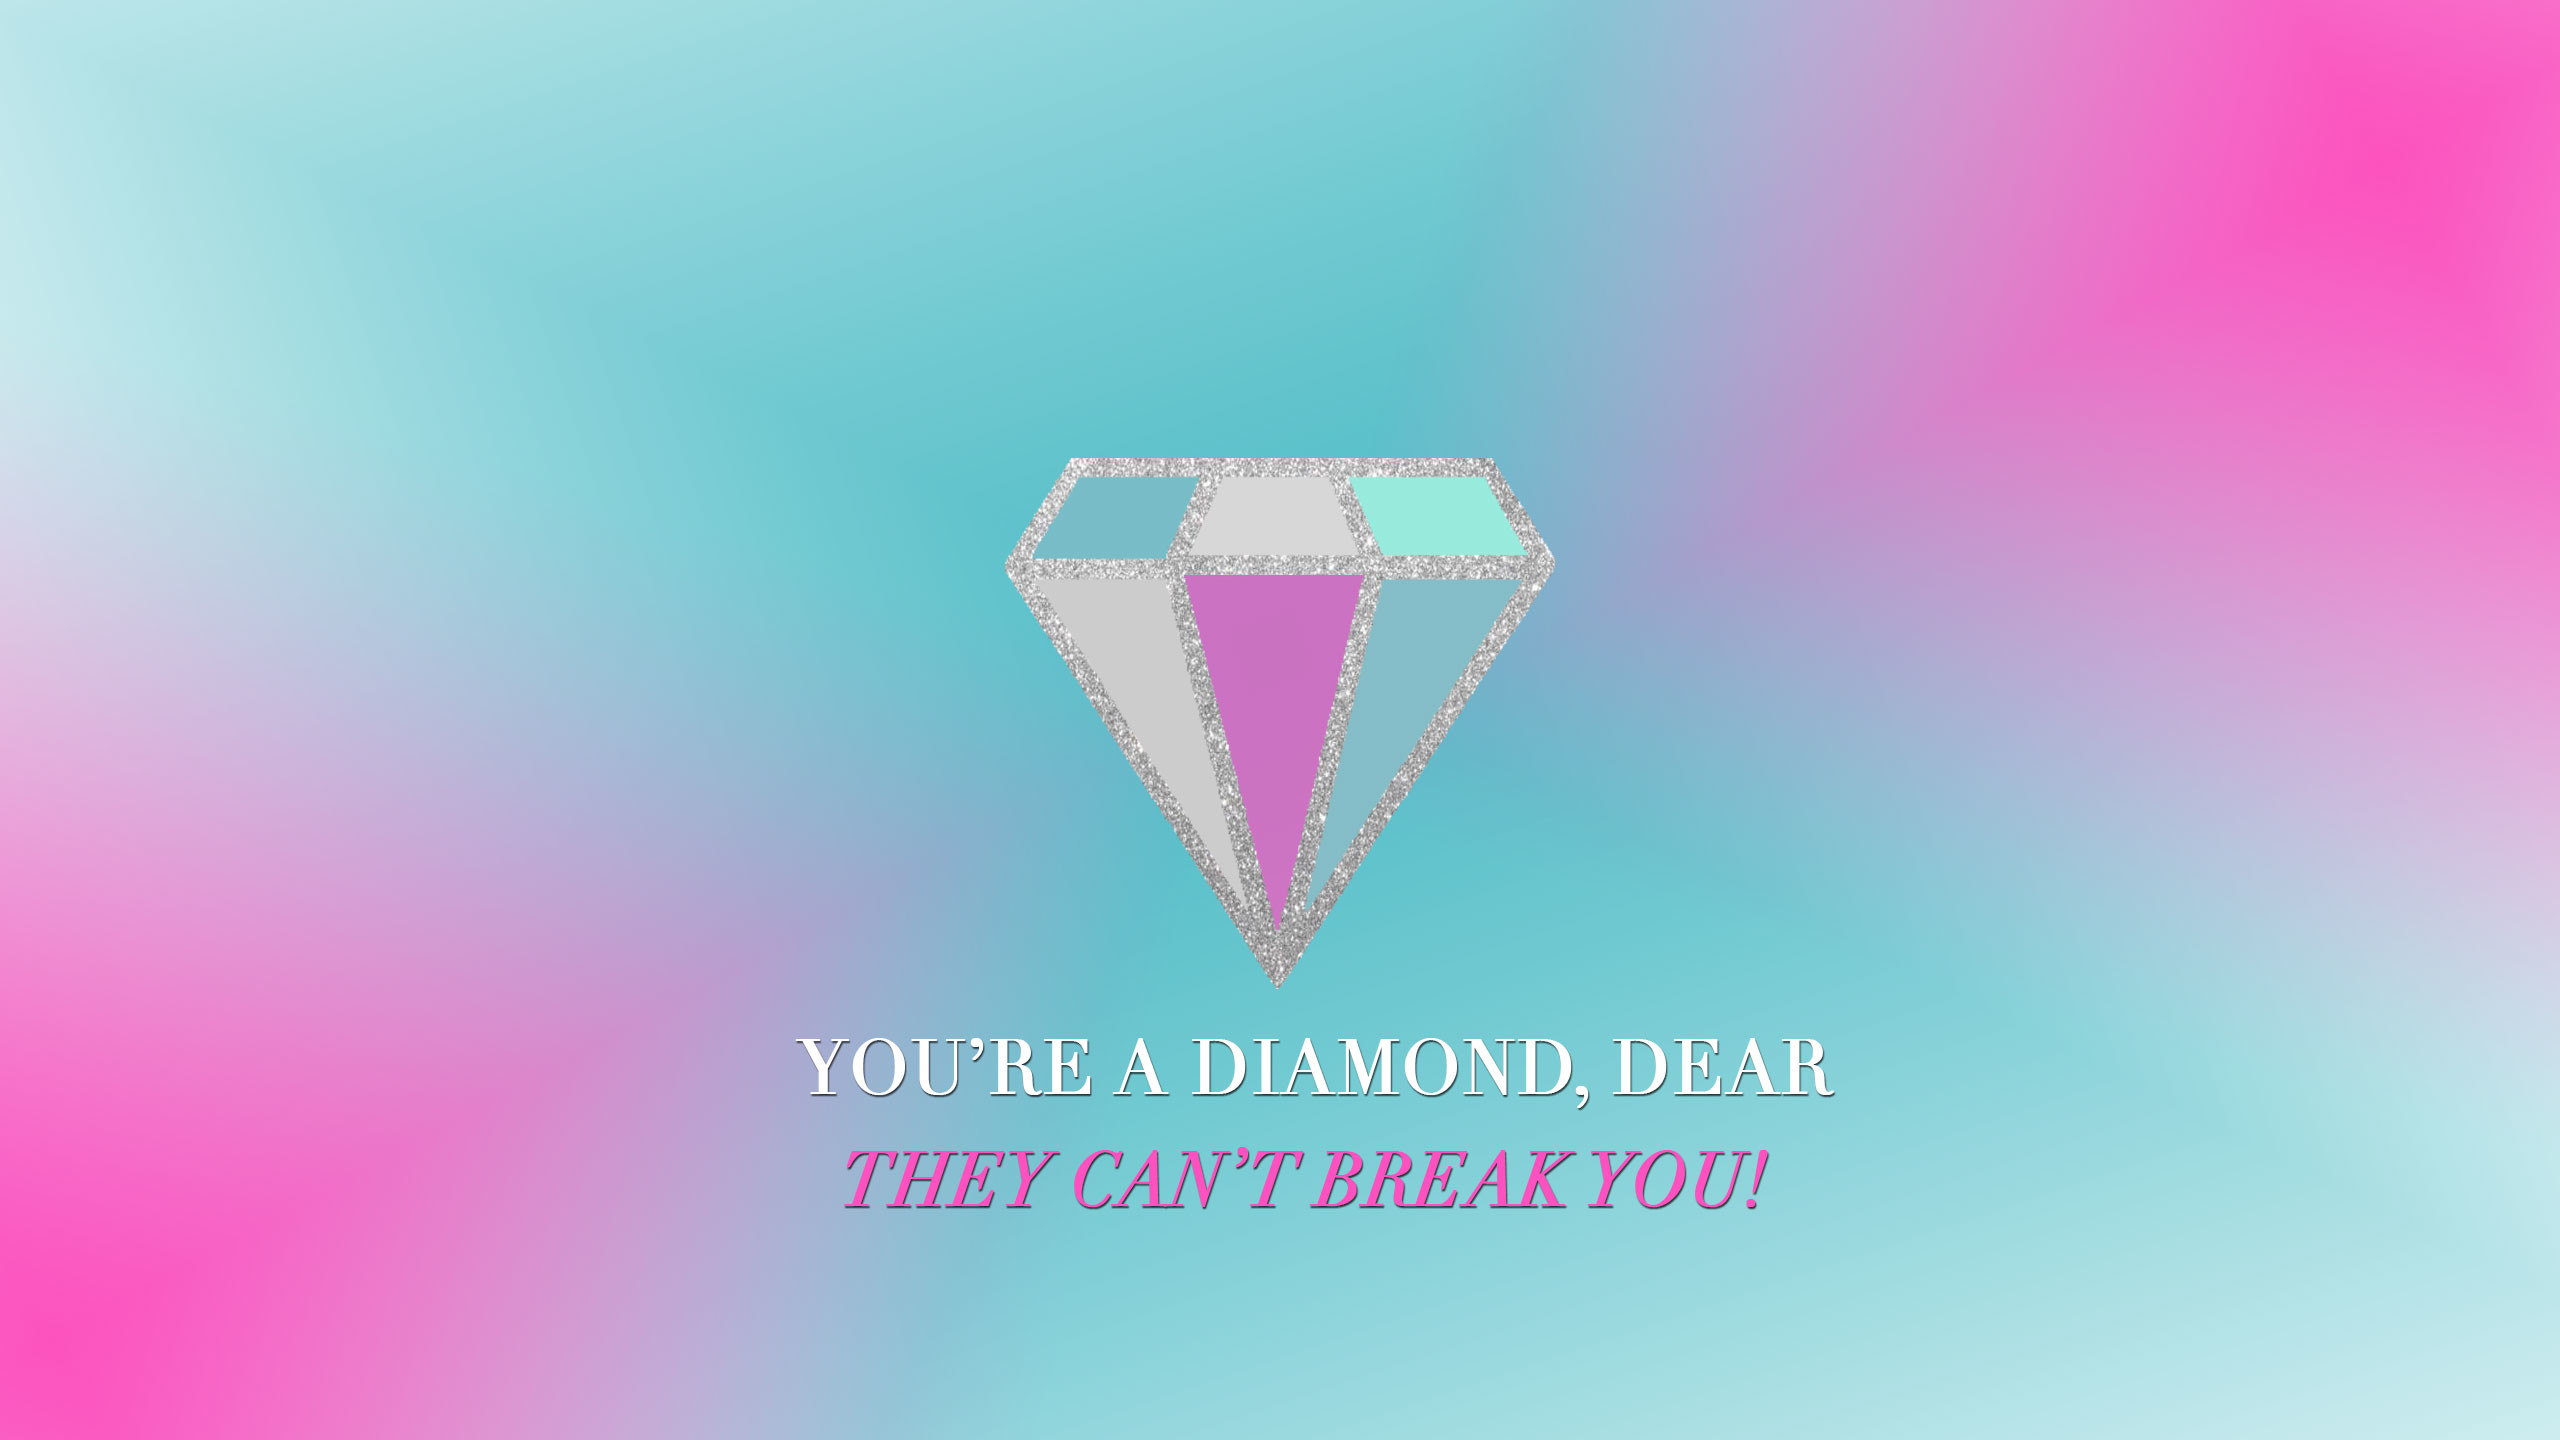 Lilly Pulitzer Quotes Wallpaper Background Diamond Tumblr 183 ①